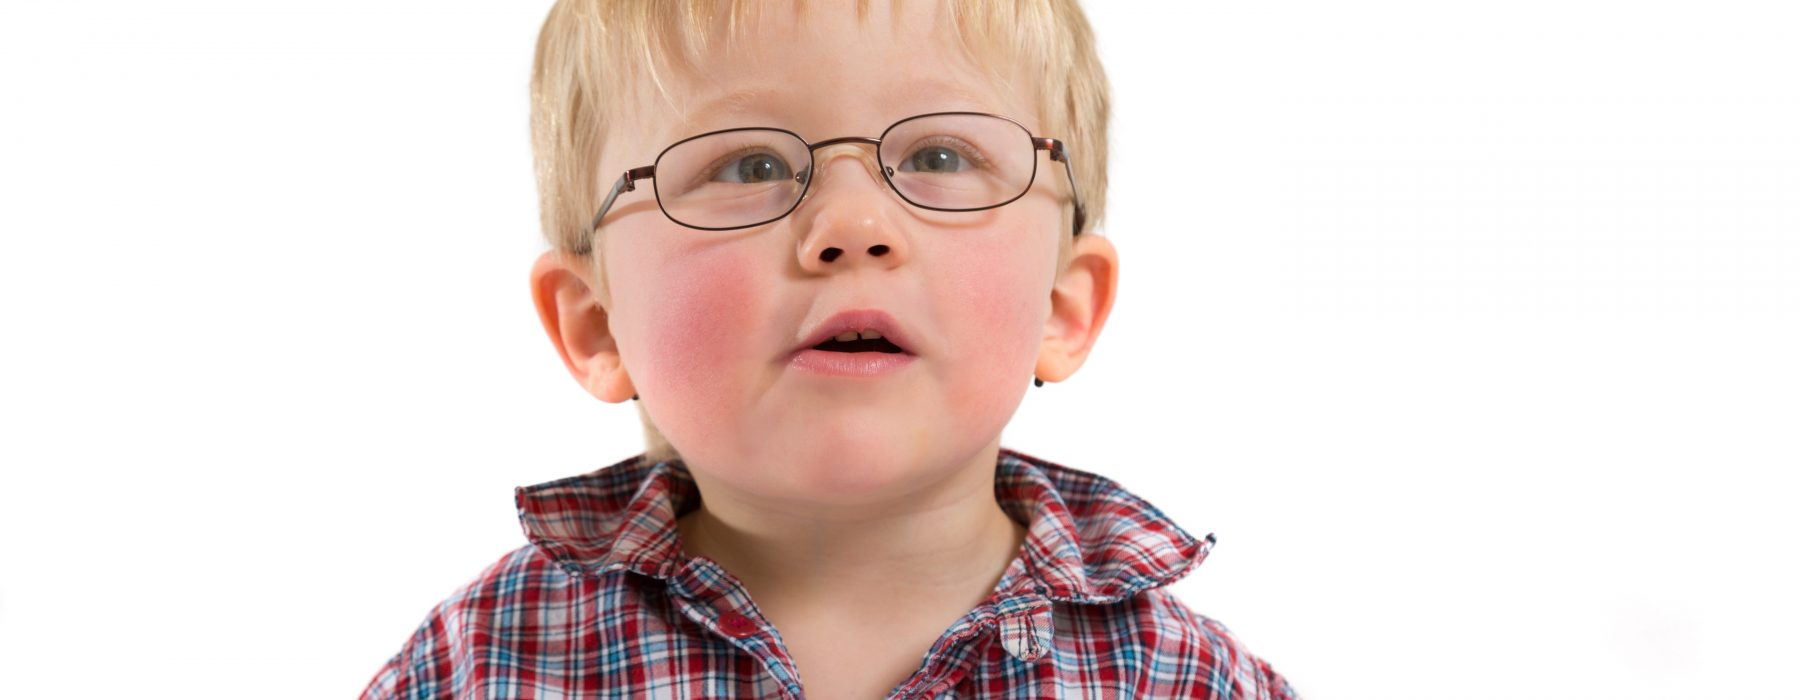 The importance of vision care in children